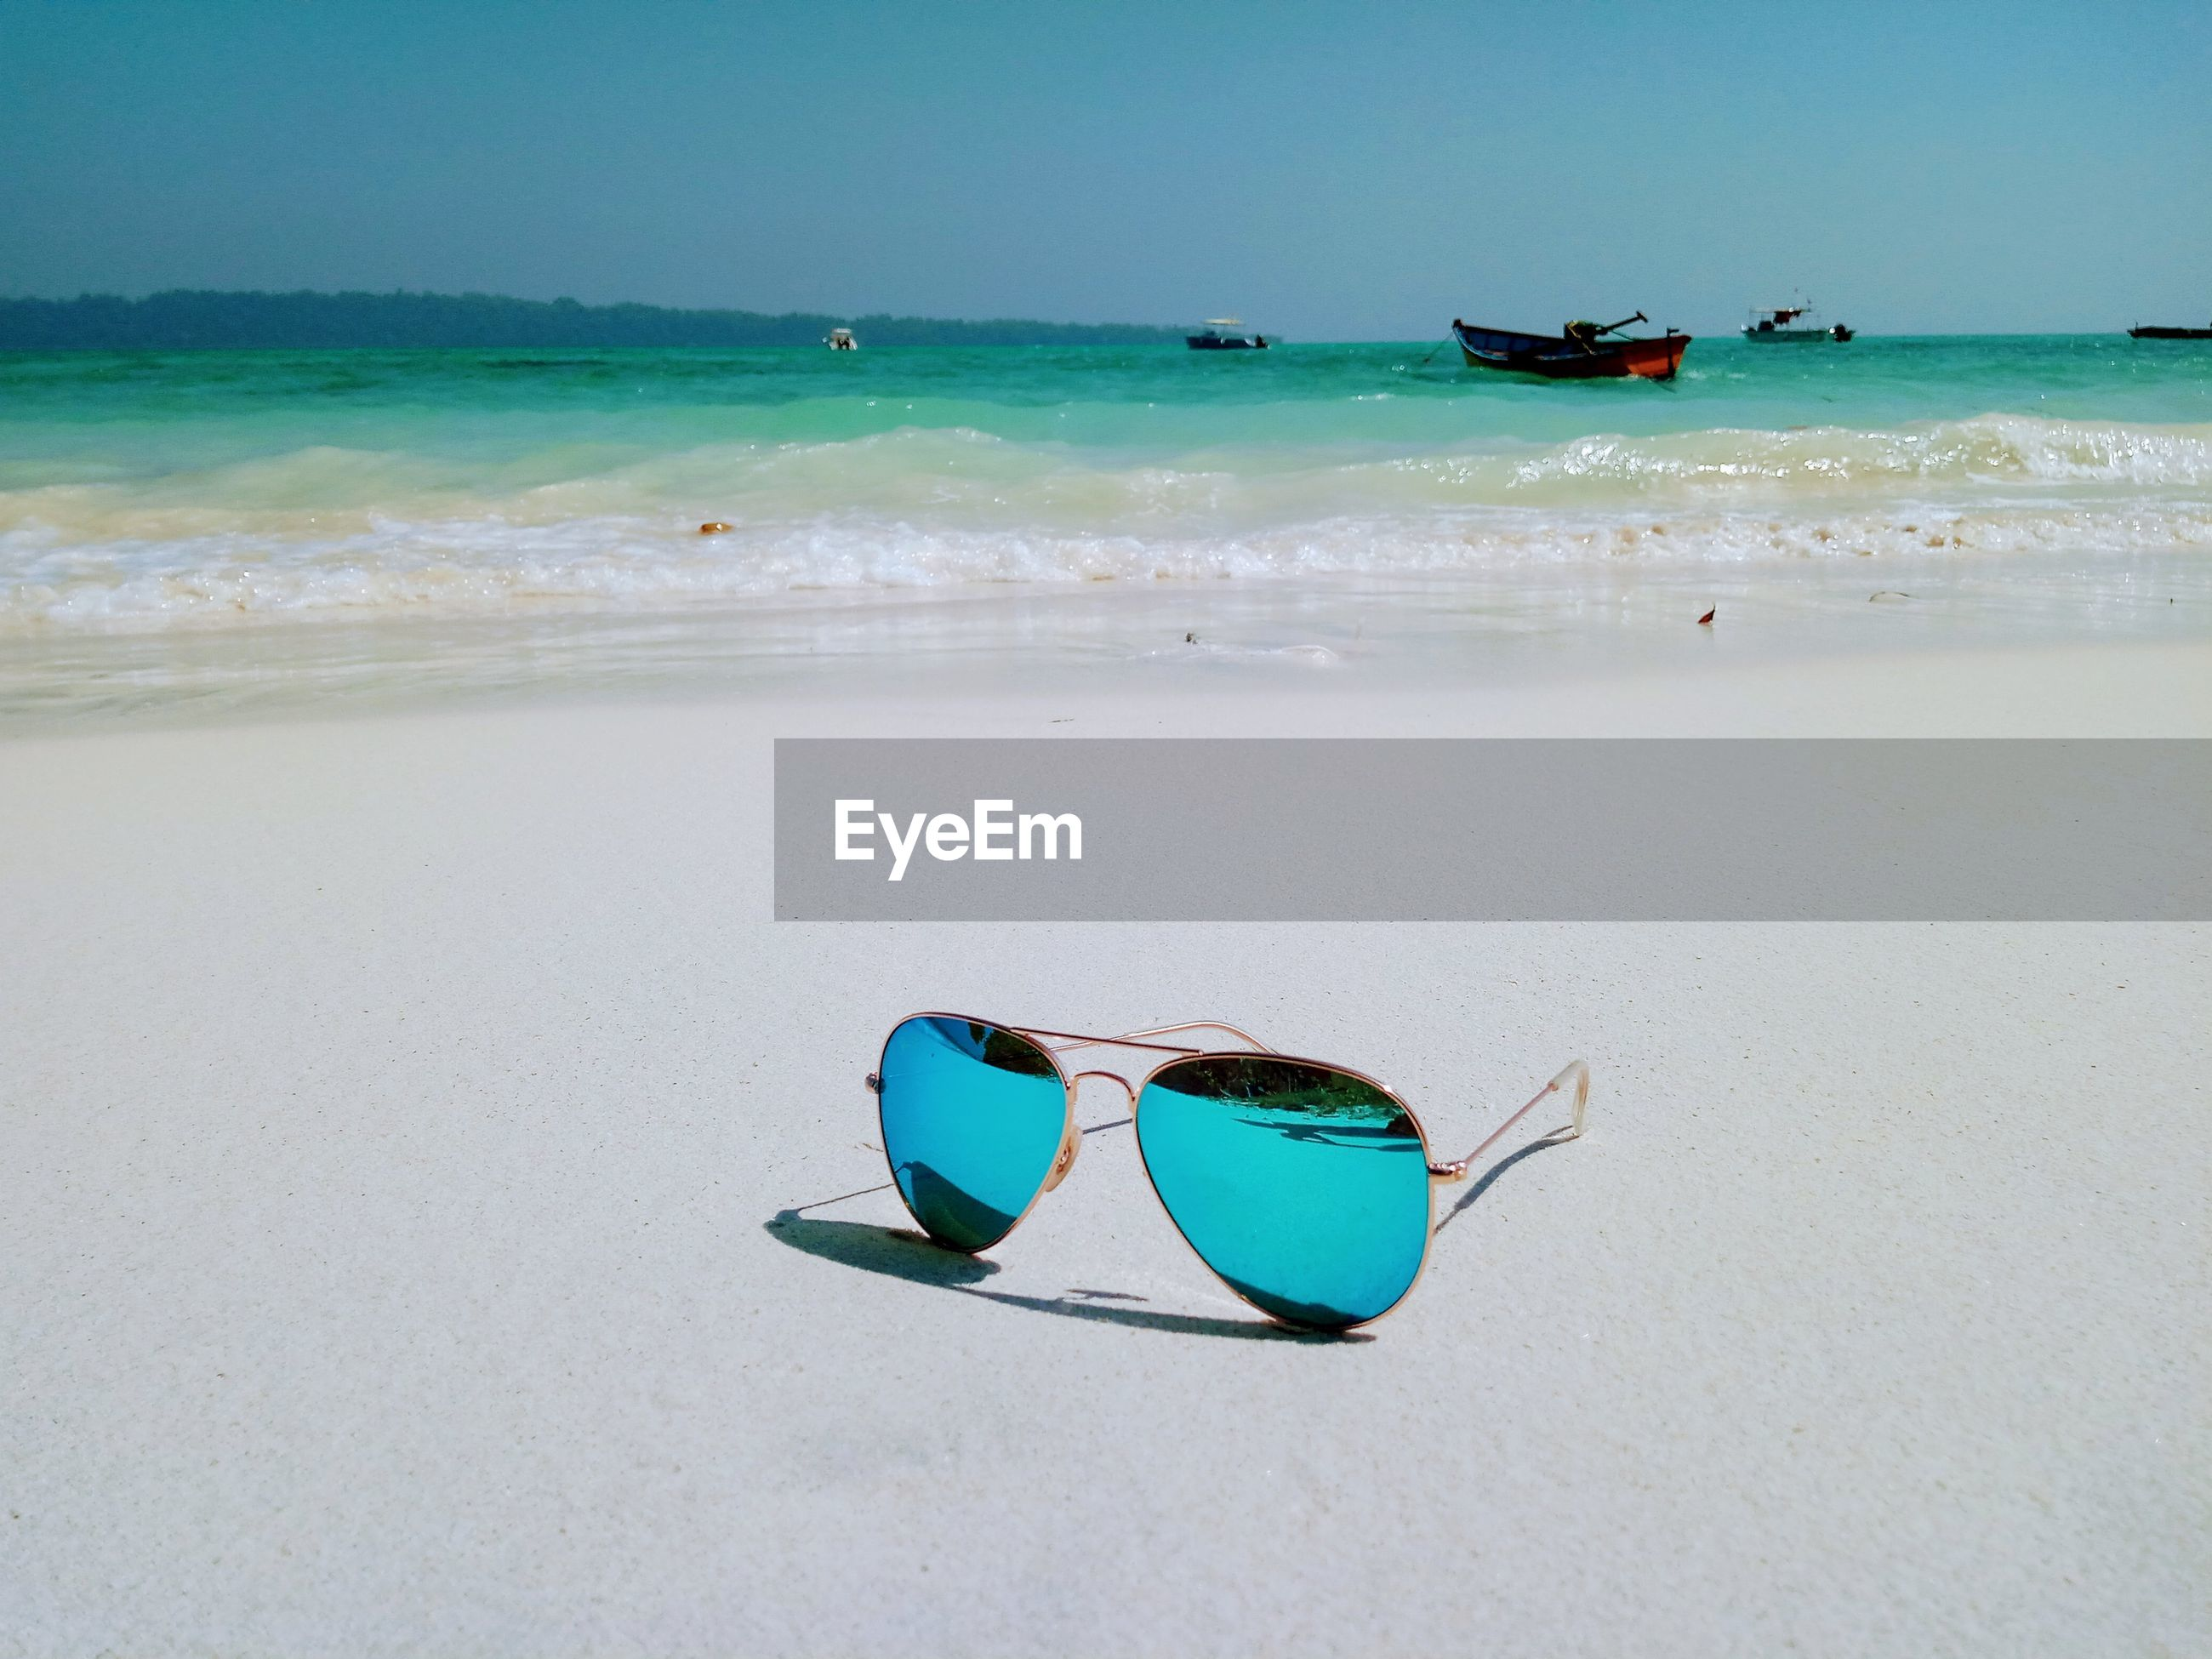 Ray ban sunglasses on beach against sky in havelock island